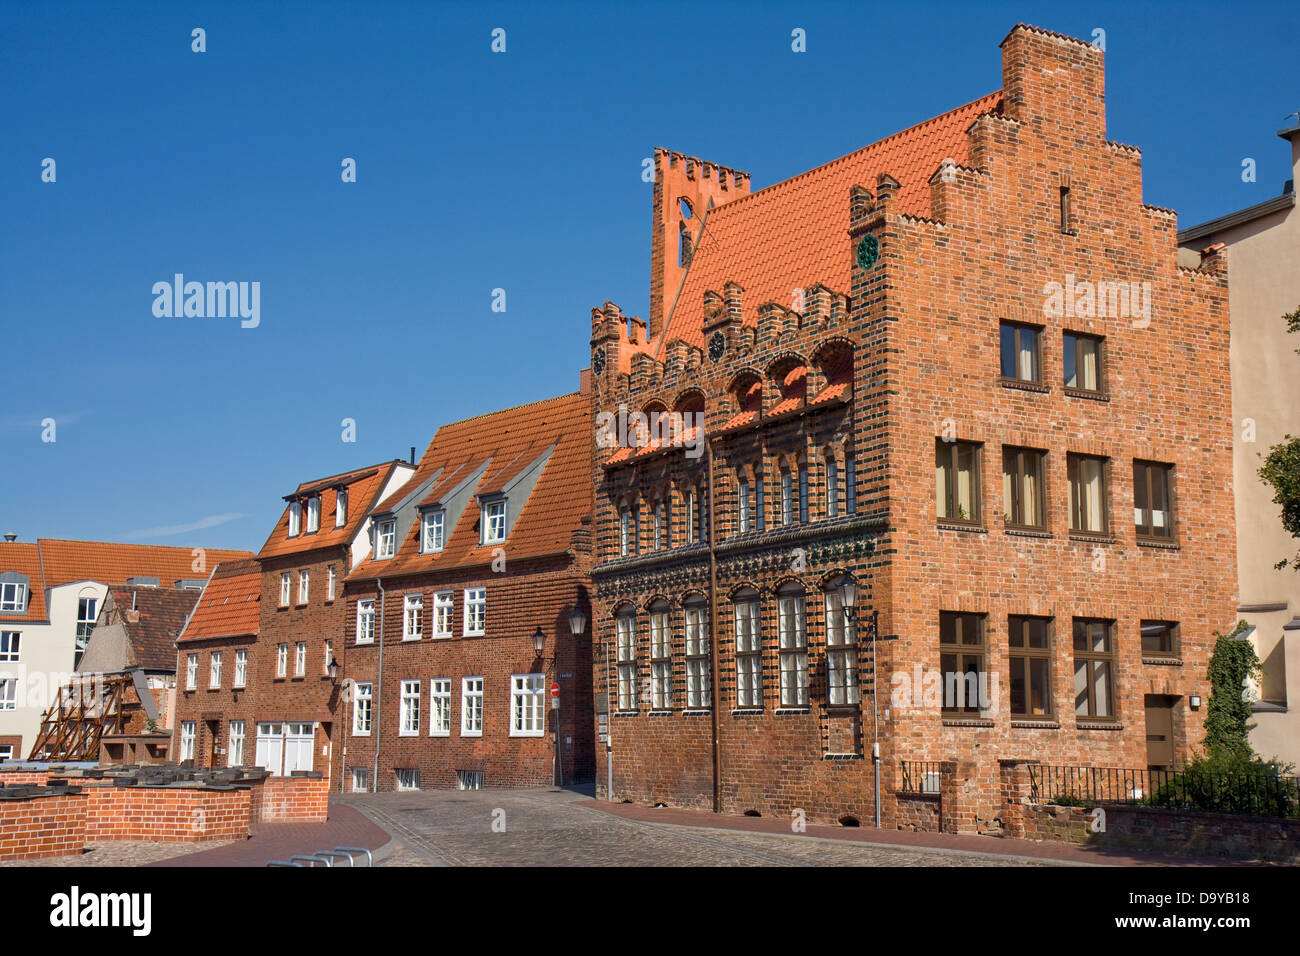 Europe, Germany, Mecklenburg-Western Pomerania, Wismar, Archidiakonat - Stock Image